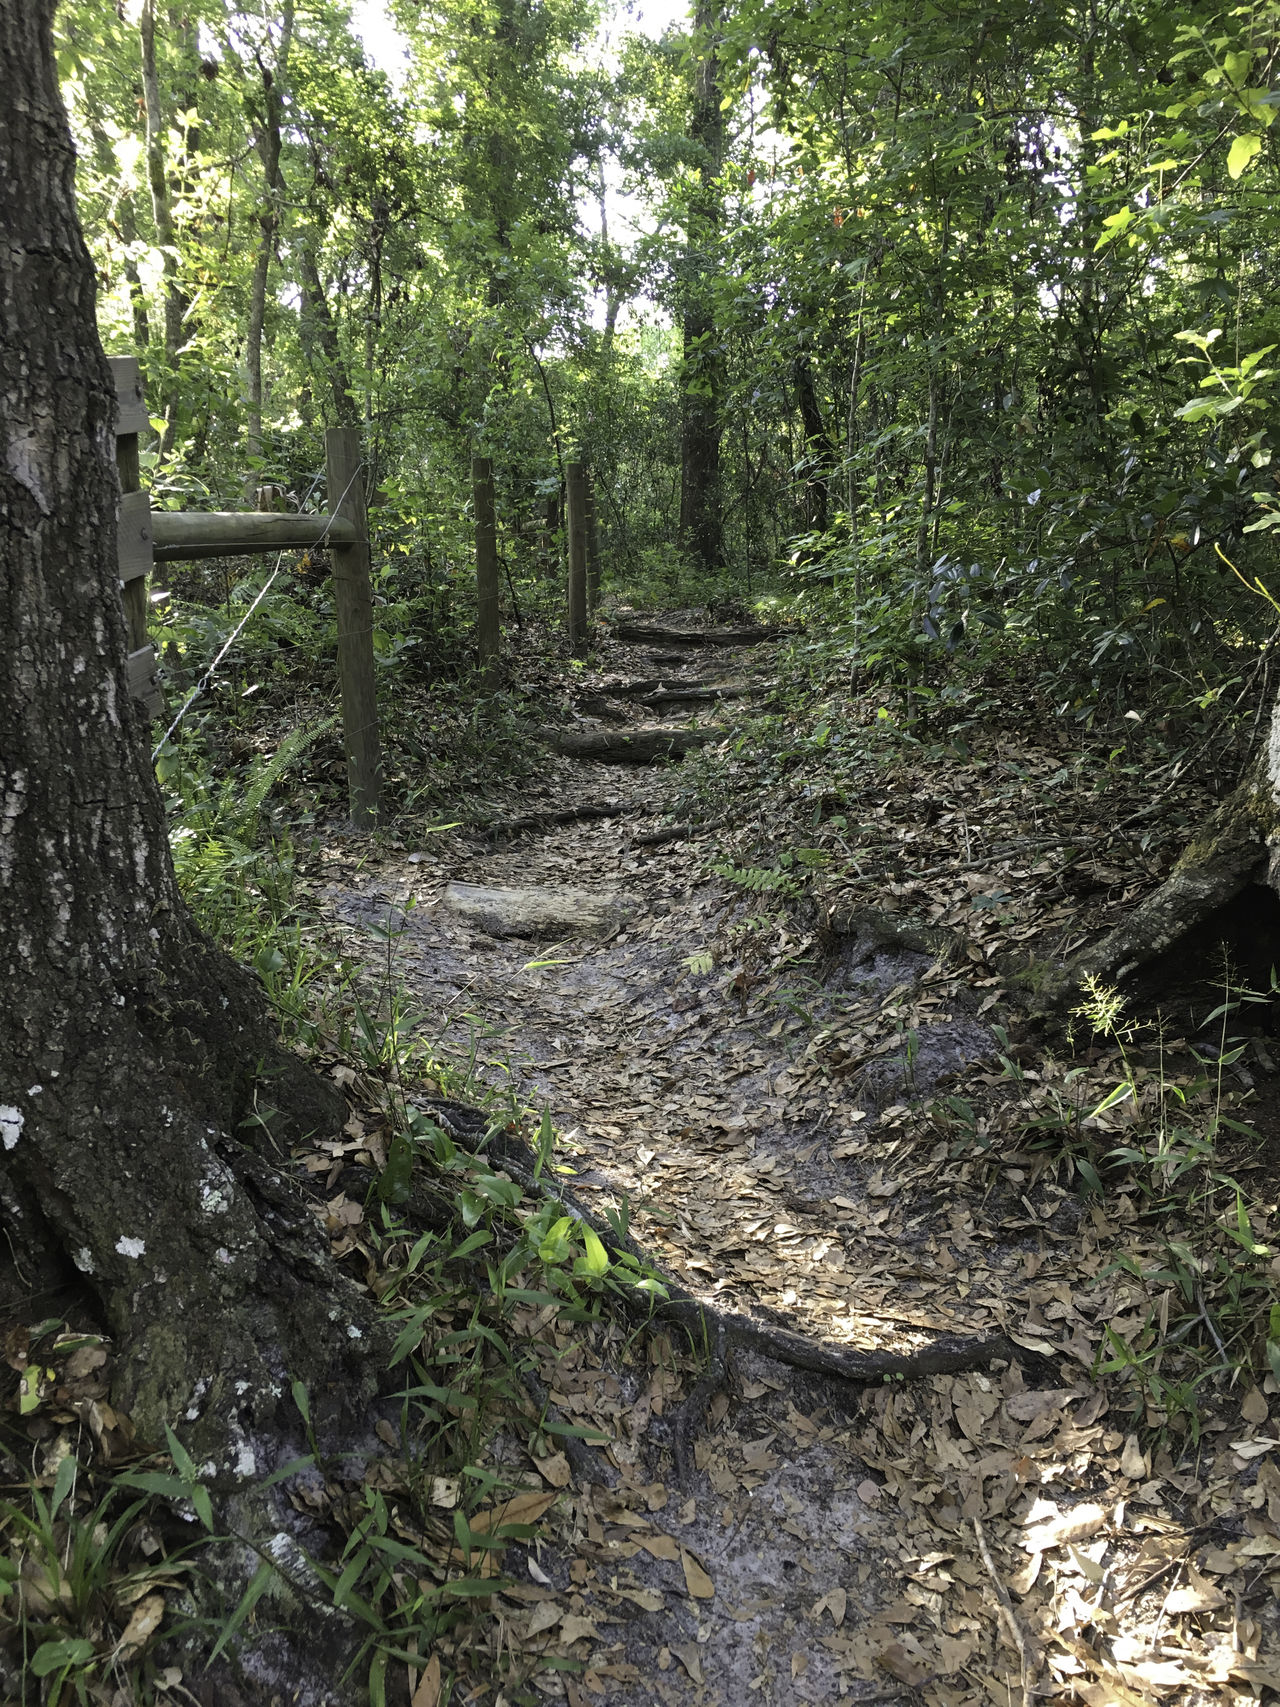 Scenic hiking trail Beauty In Nature Day Forest Growth Hiking Landscape Leaves Nature Outdoors Pattern Scenics Trail Tranquility Tree Tree Trunk